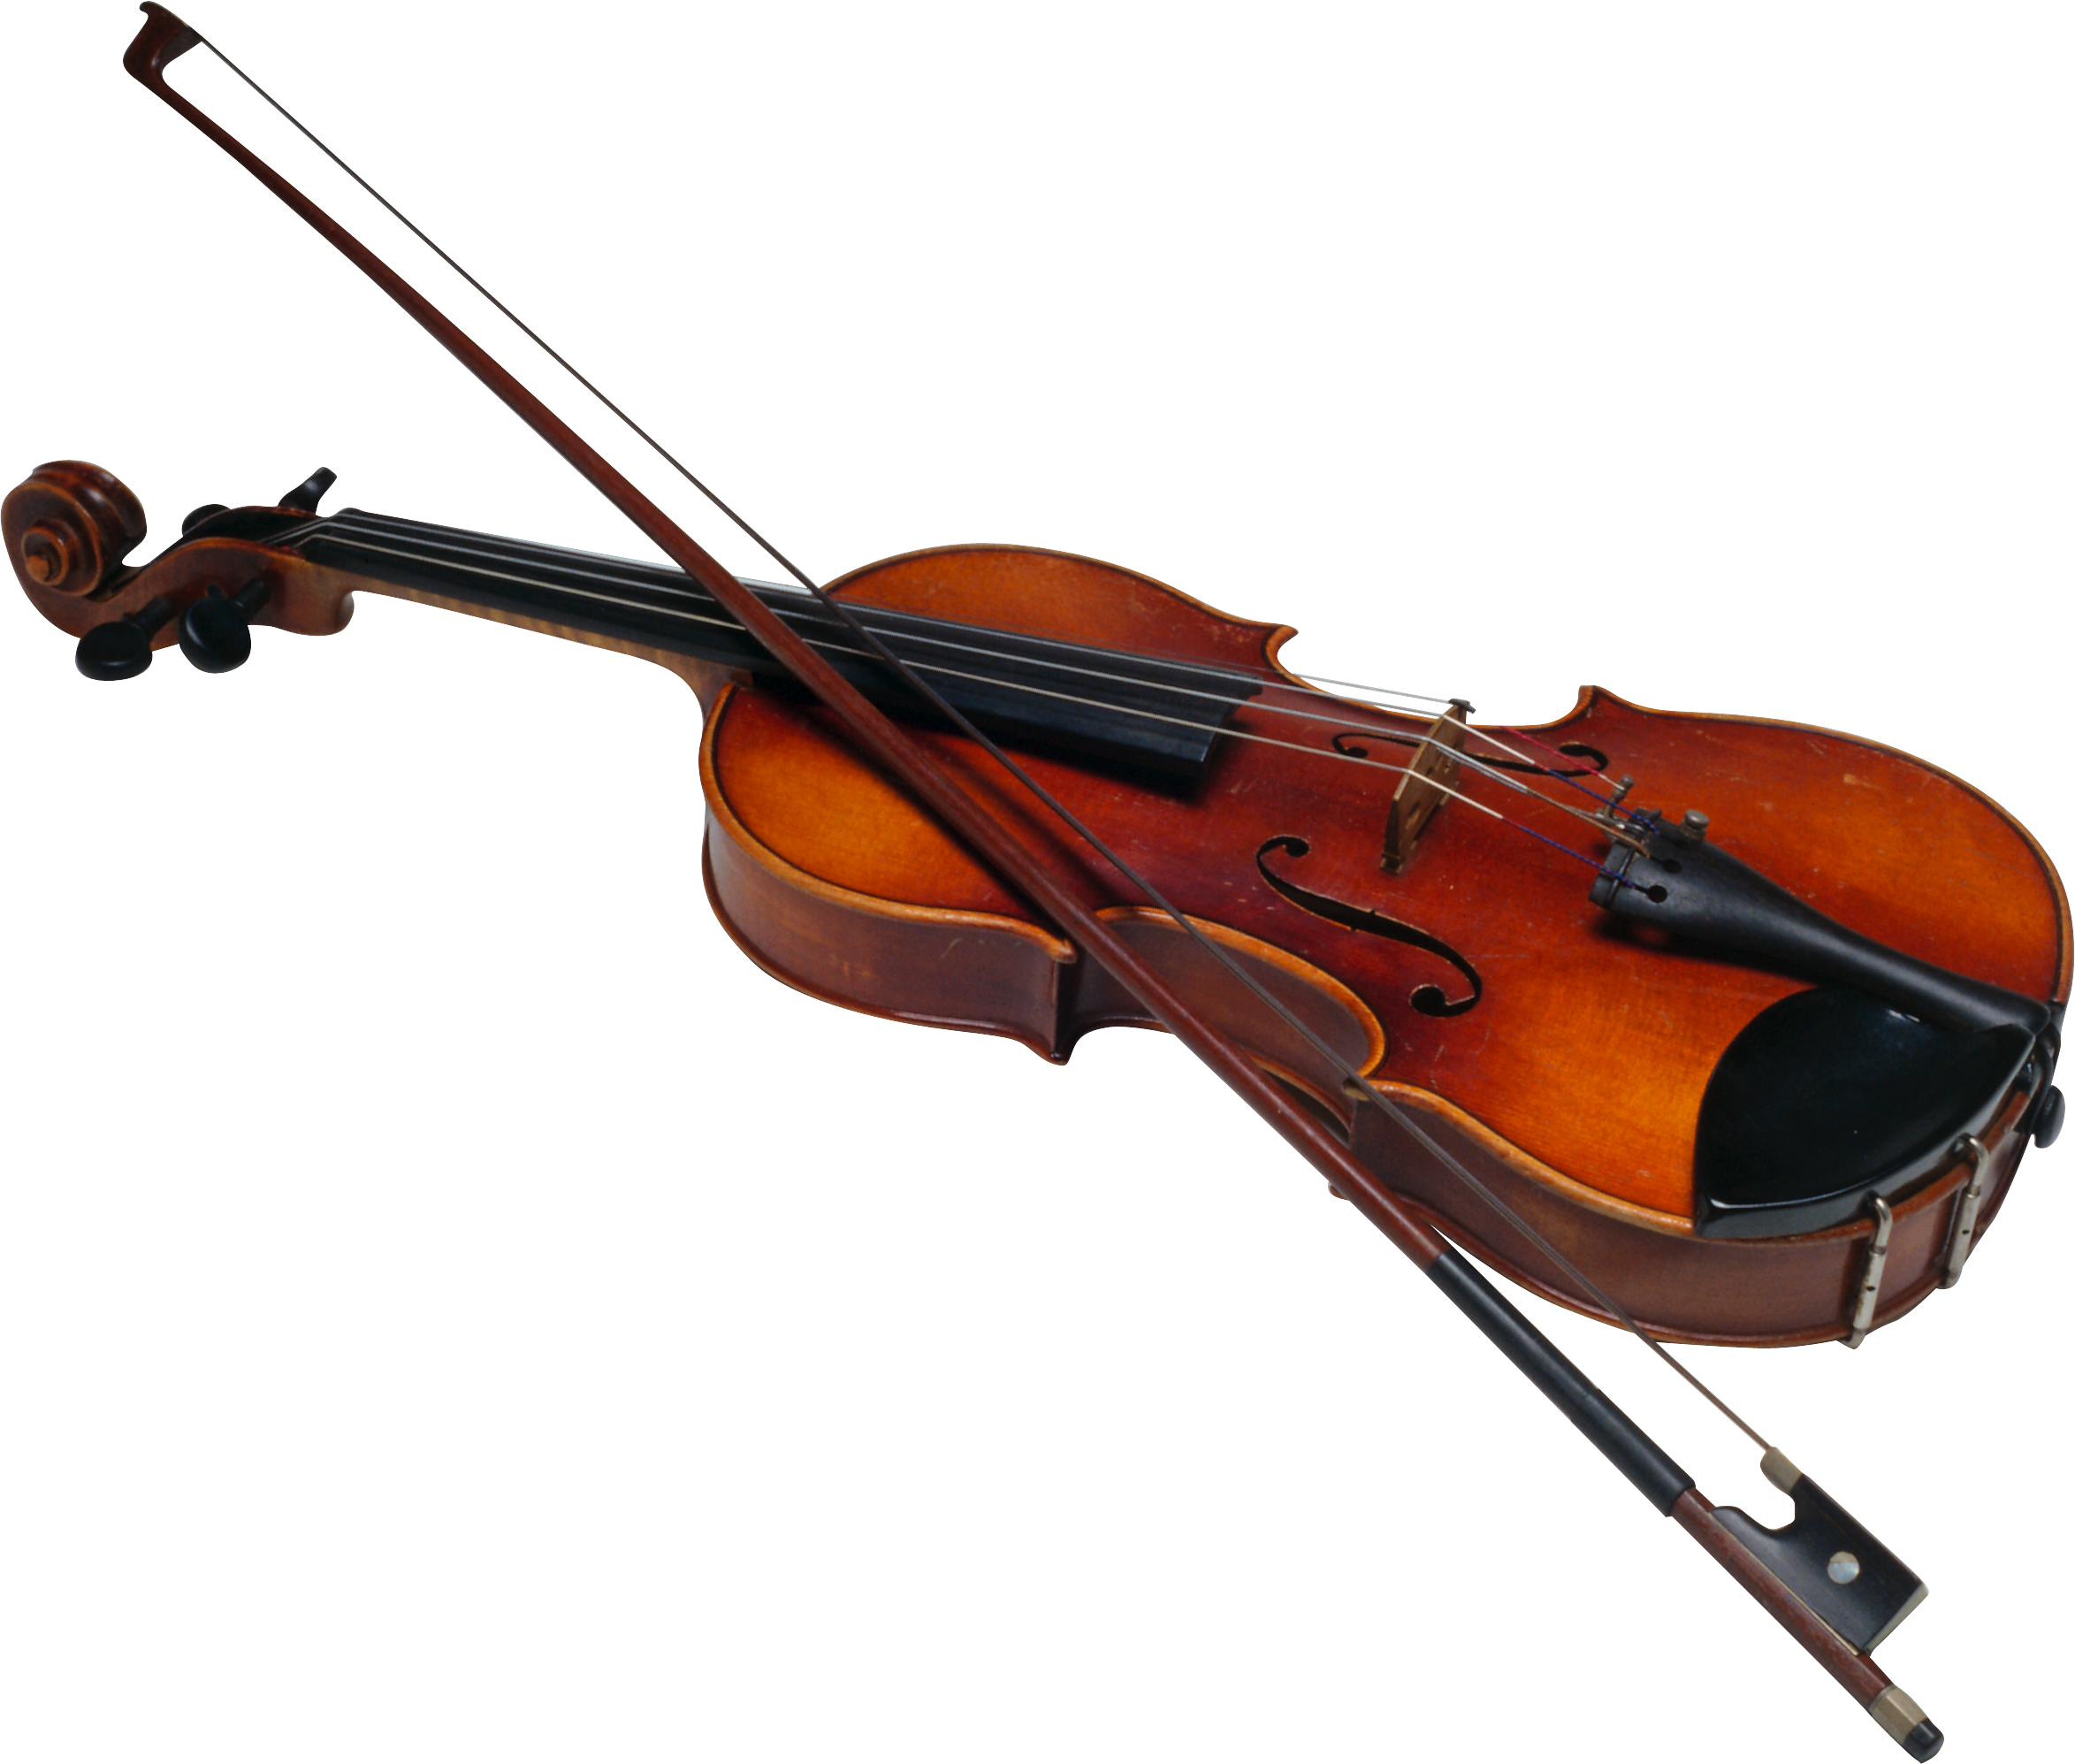 Now you can download Violin PNG Picture